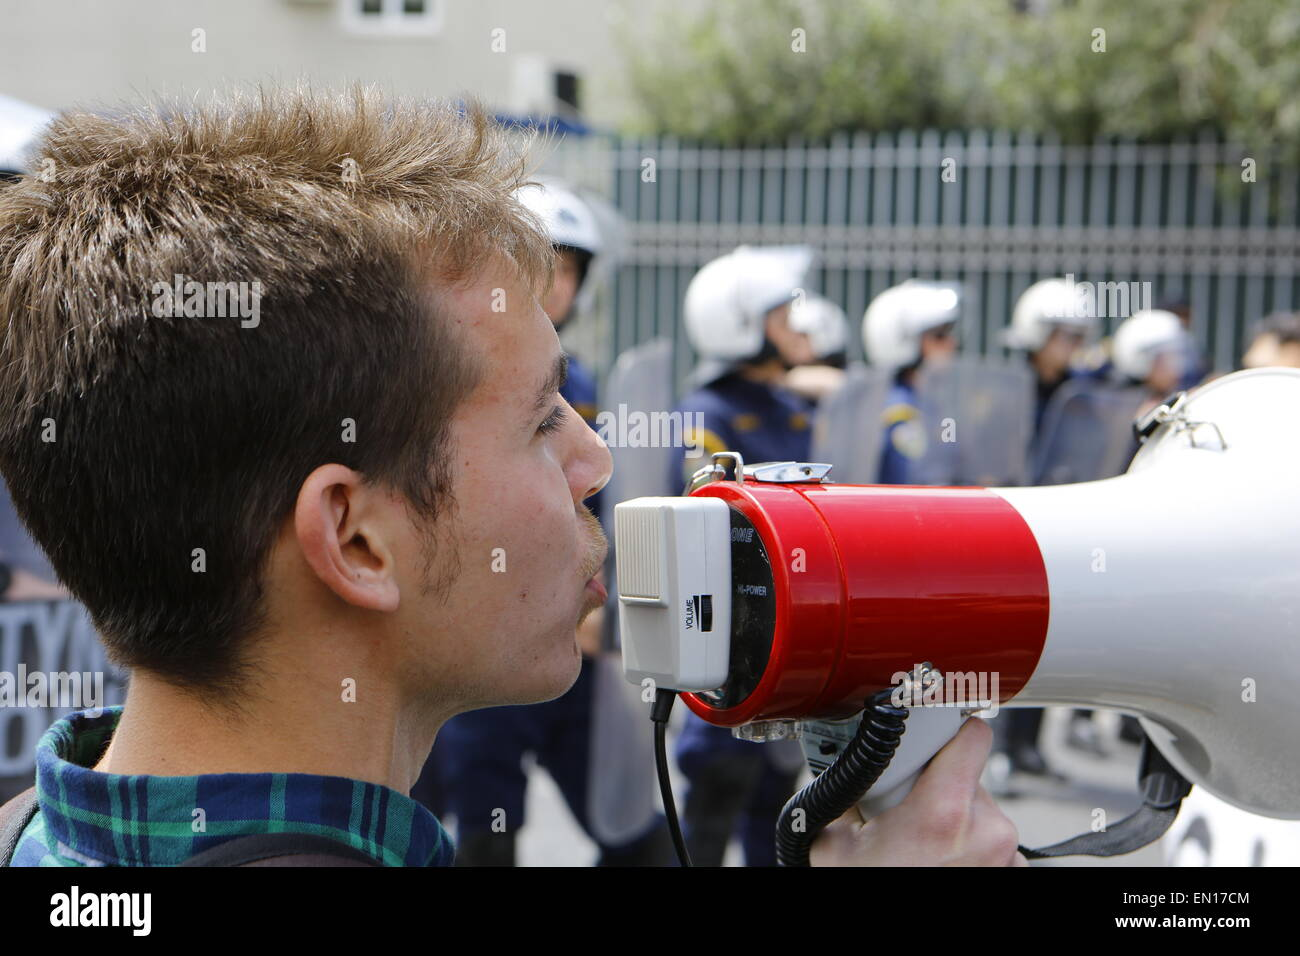 Athens, Greece. 25th Apr, 2015. A protester shouts slogans through a megaphone. Riot police officers can be seen - Stock Image